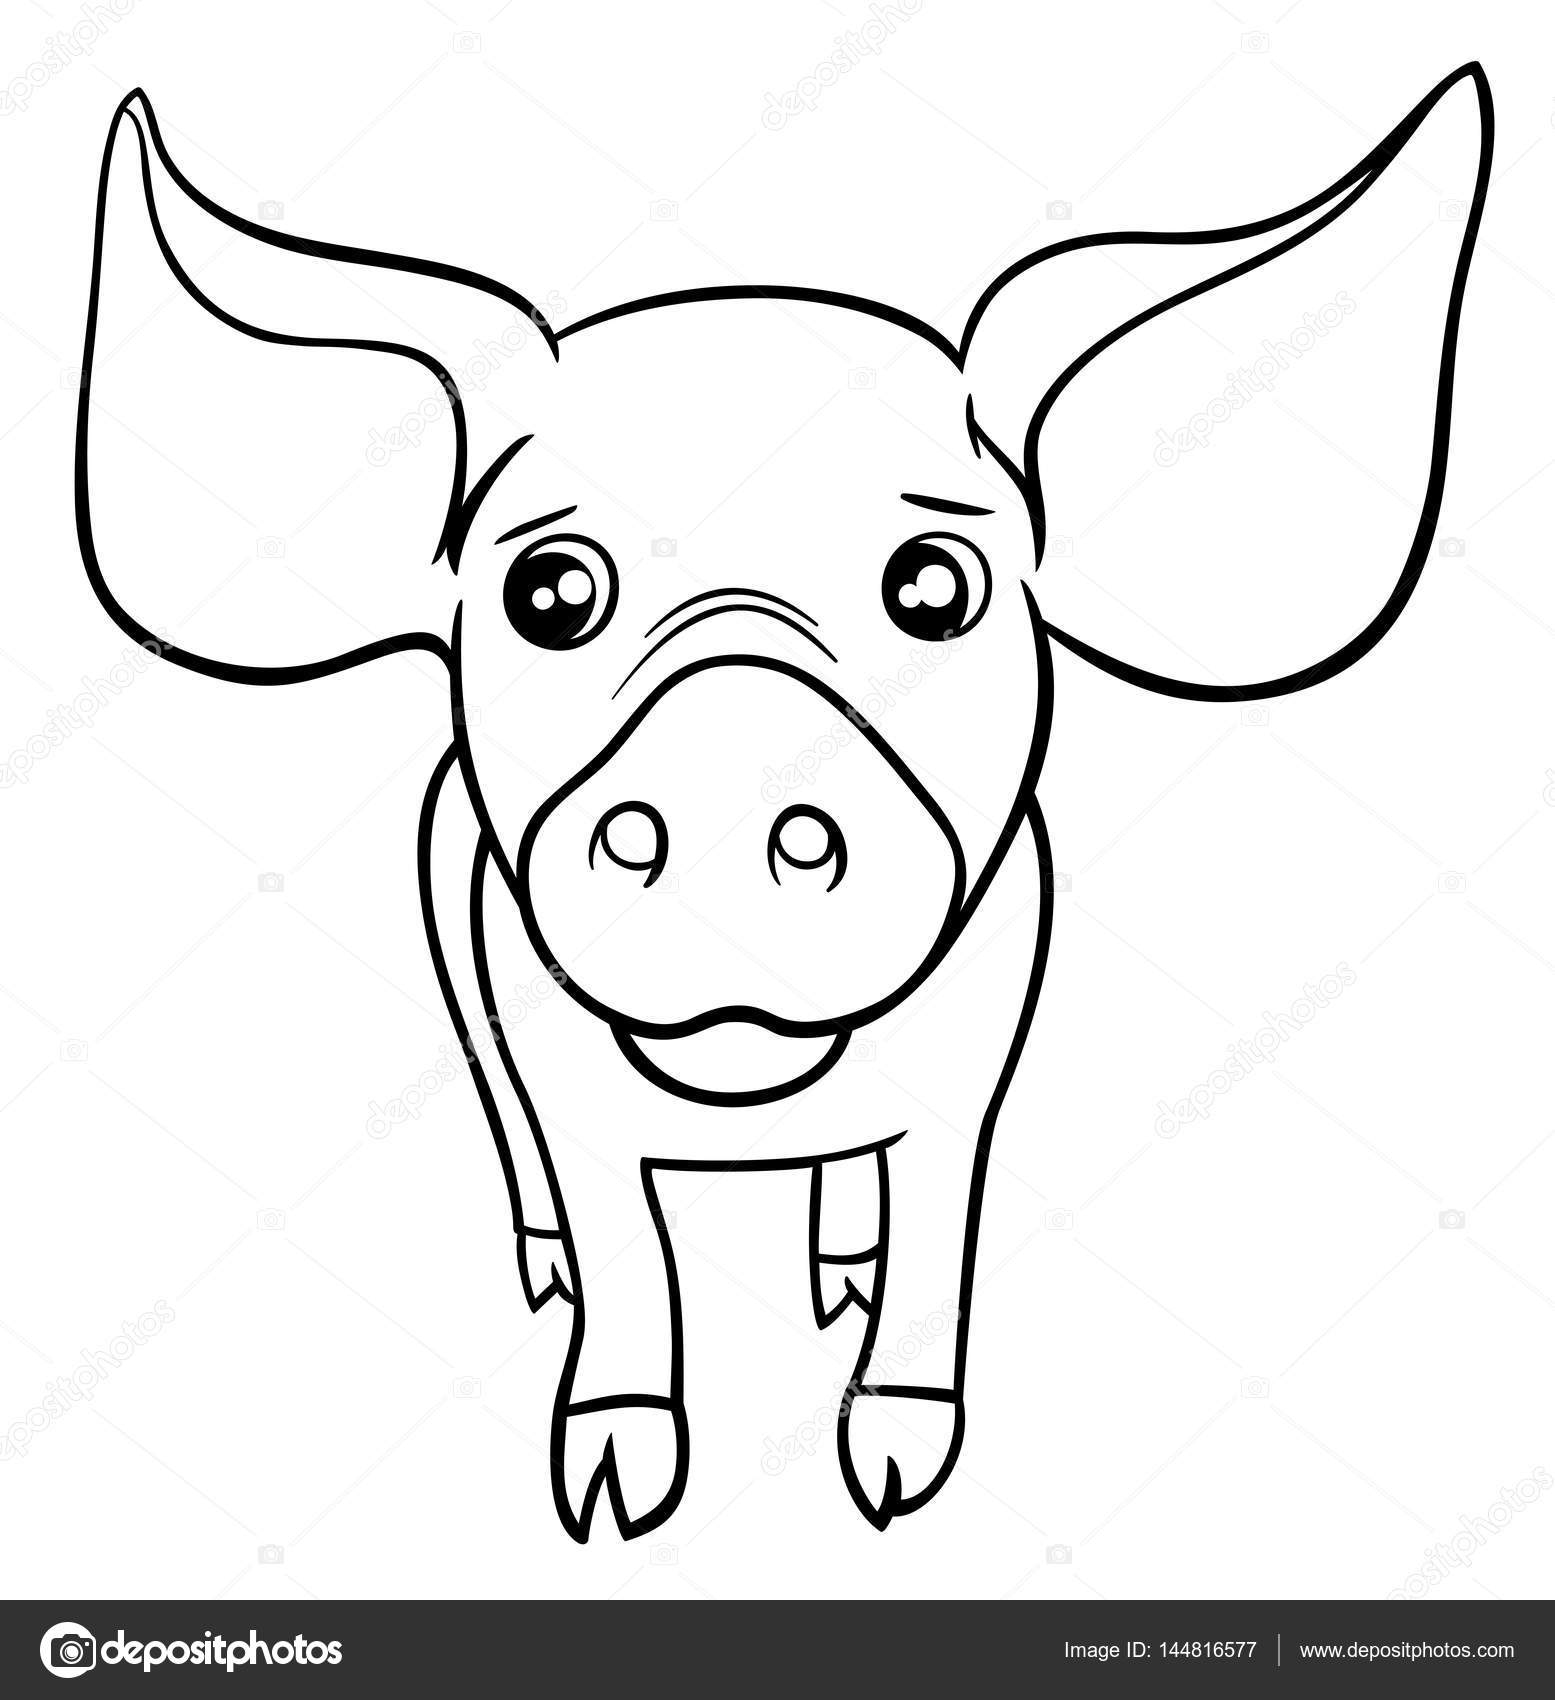 Página para colorear de cerdo o cochinillo — Vector de stock ...